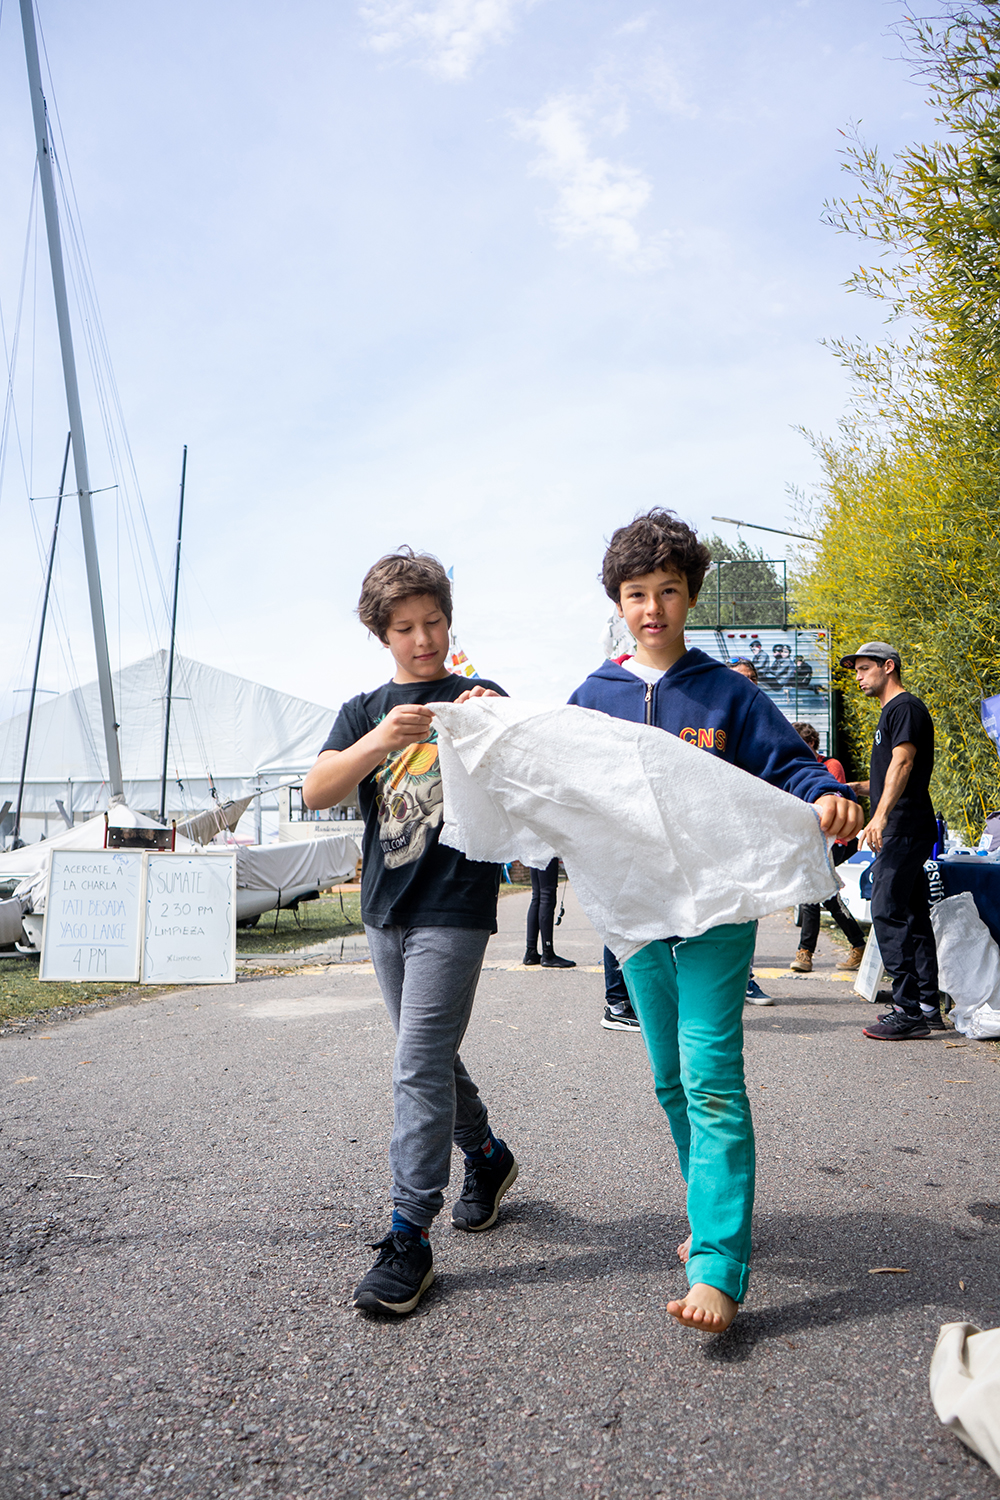 Sailors work together to keep their sailing centers plastic free. Photo credit: Unplastify